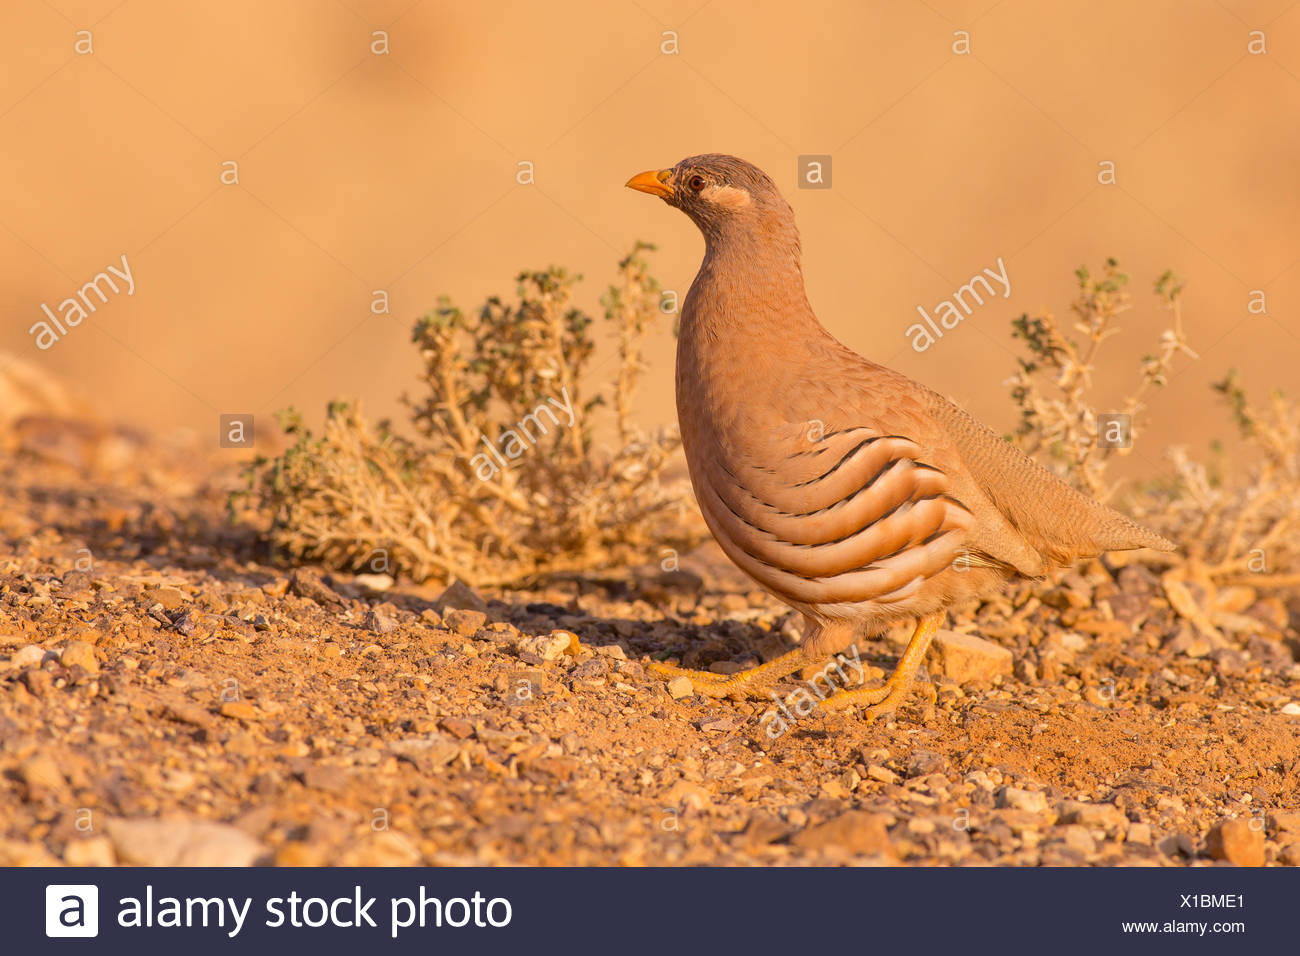 sand partridge (Ammoperdix heyi) is a gamebird in the pheasant family Phasianidae of the order Galliformes, gallinaceous birds. Photographed in Israel - Stock Image